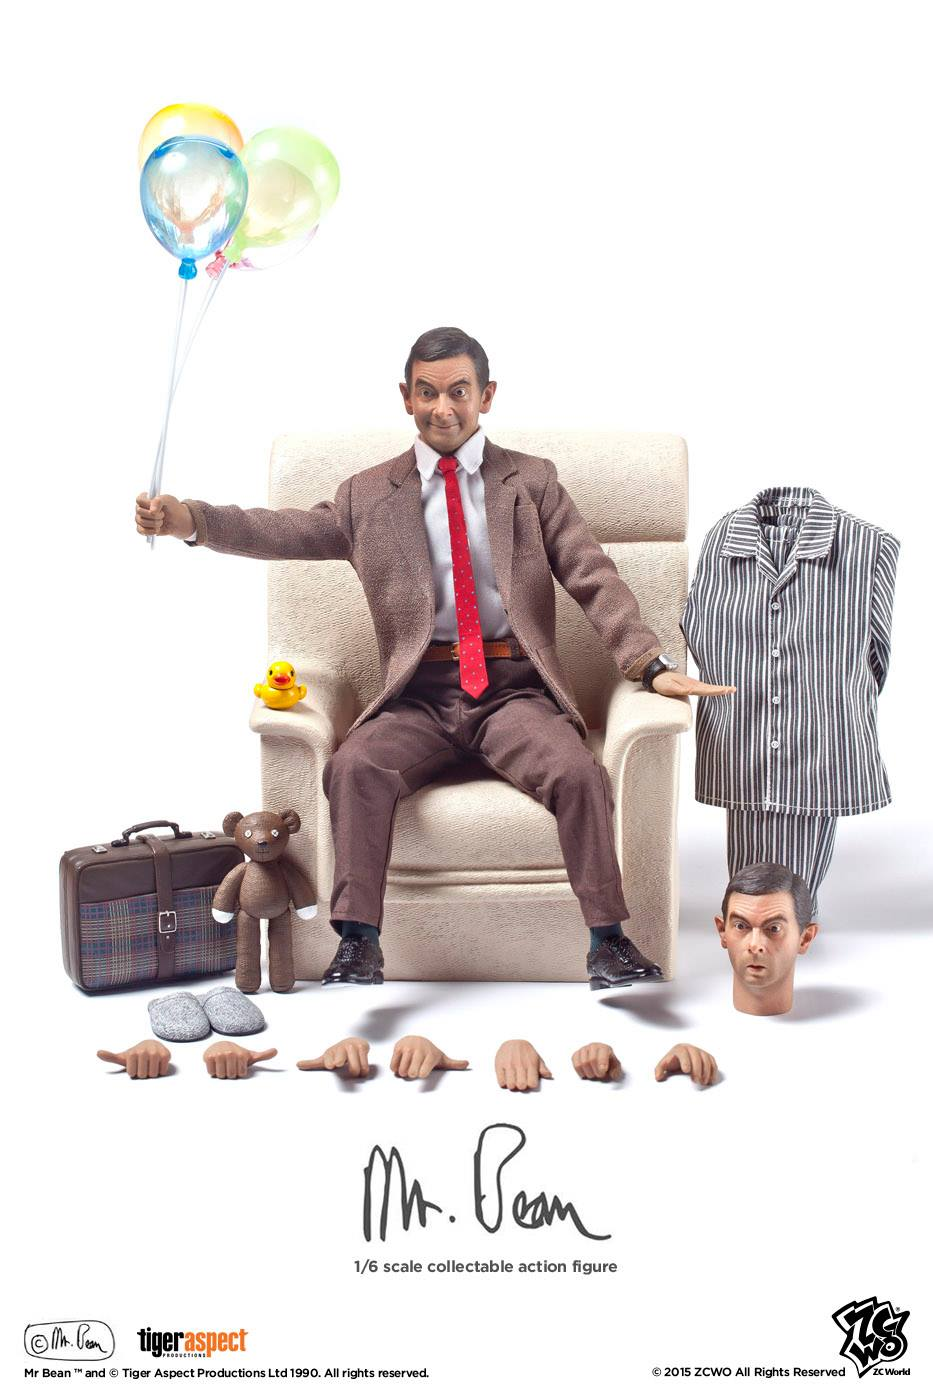 [ZCWO] Mr. Bean - 1/6 scale 150250sy1wuzyqu179wsss